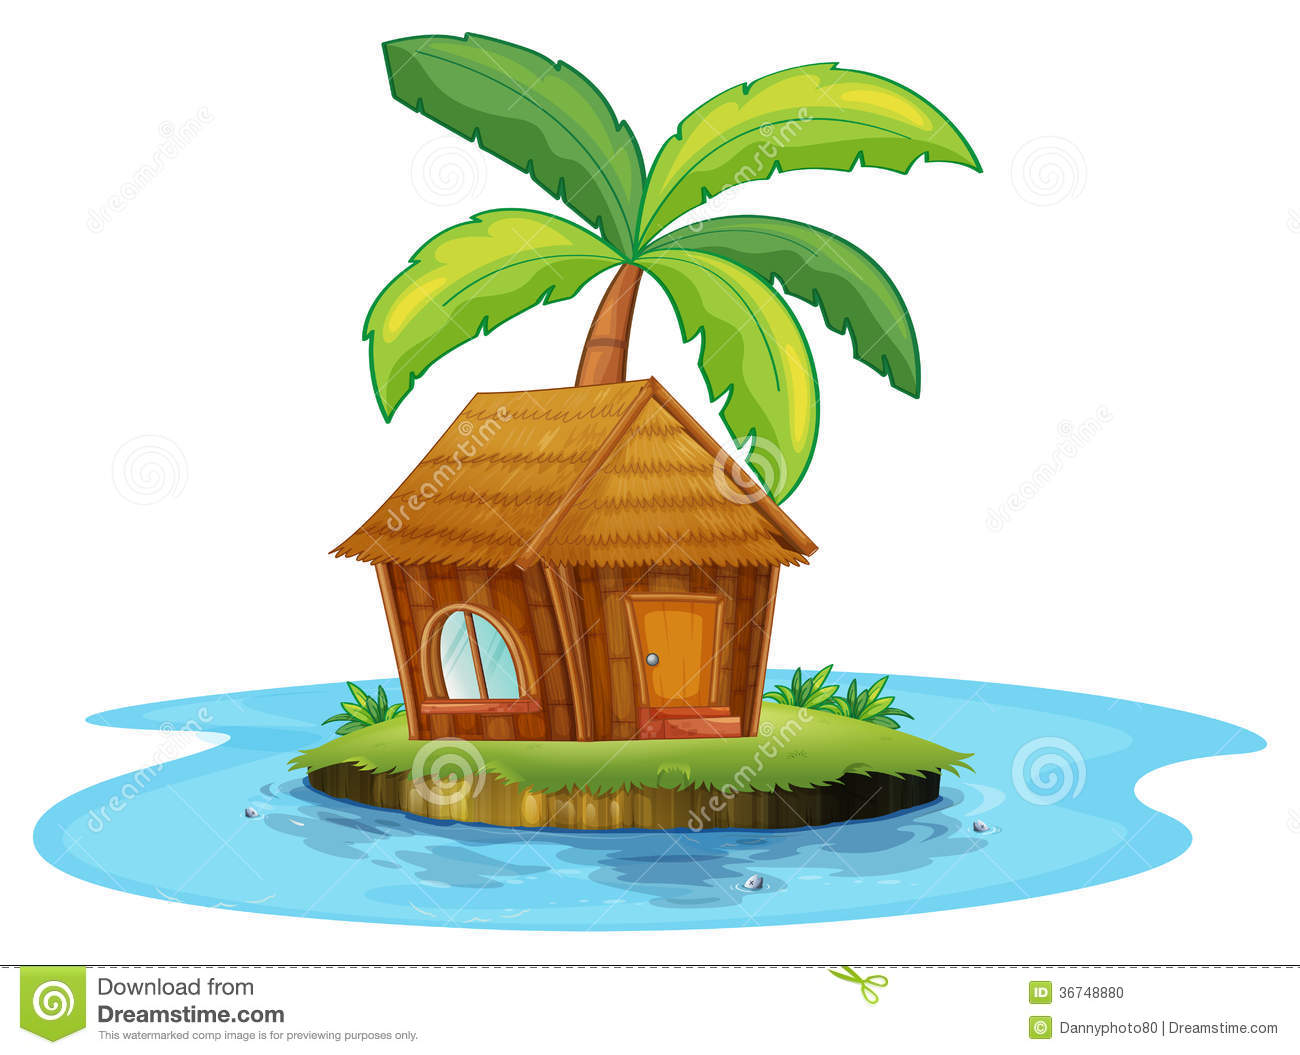 Illustration Of An Island With A Nipa Hut And A Palm Tree On A White